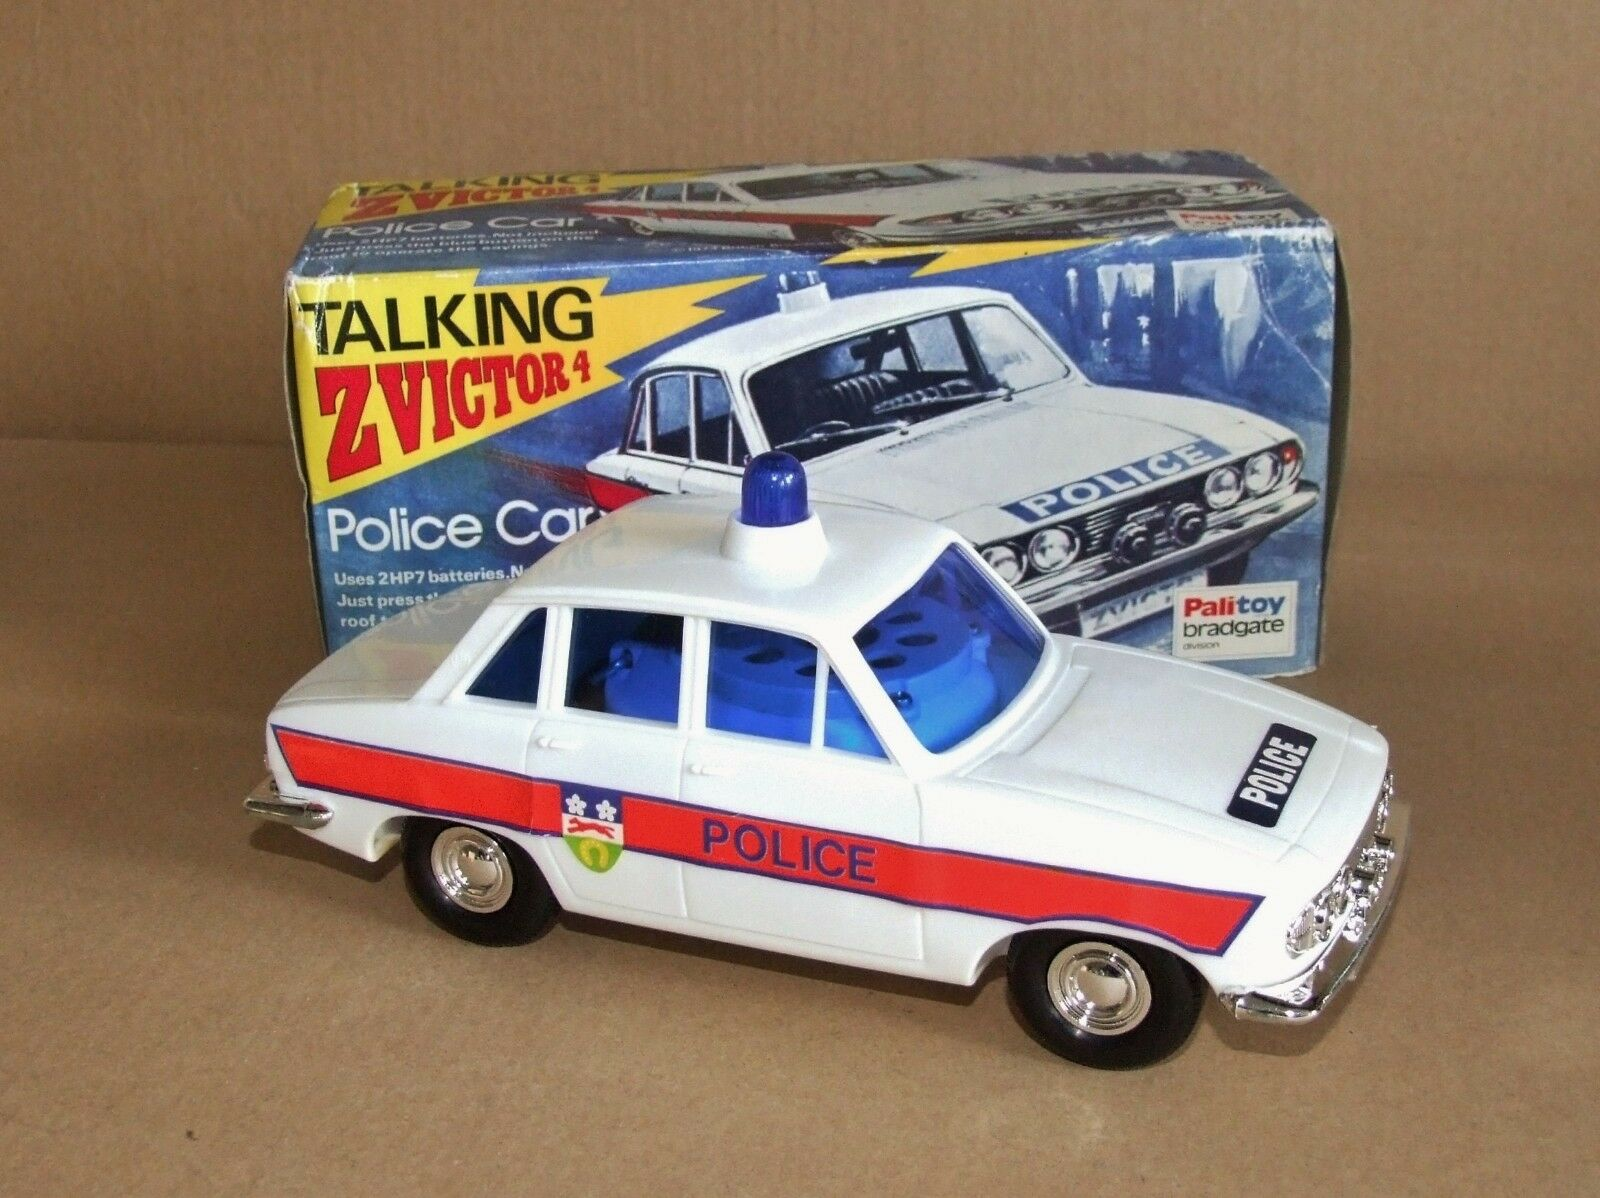 Palitoy Triumph 2.5 Police Car Talking Z Victor 4